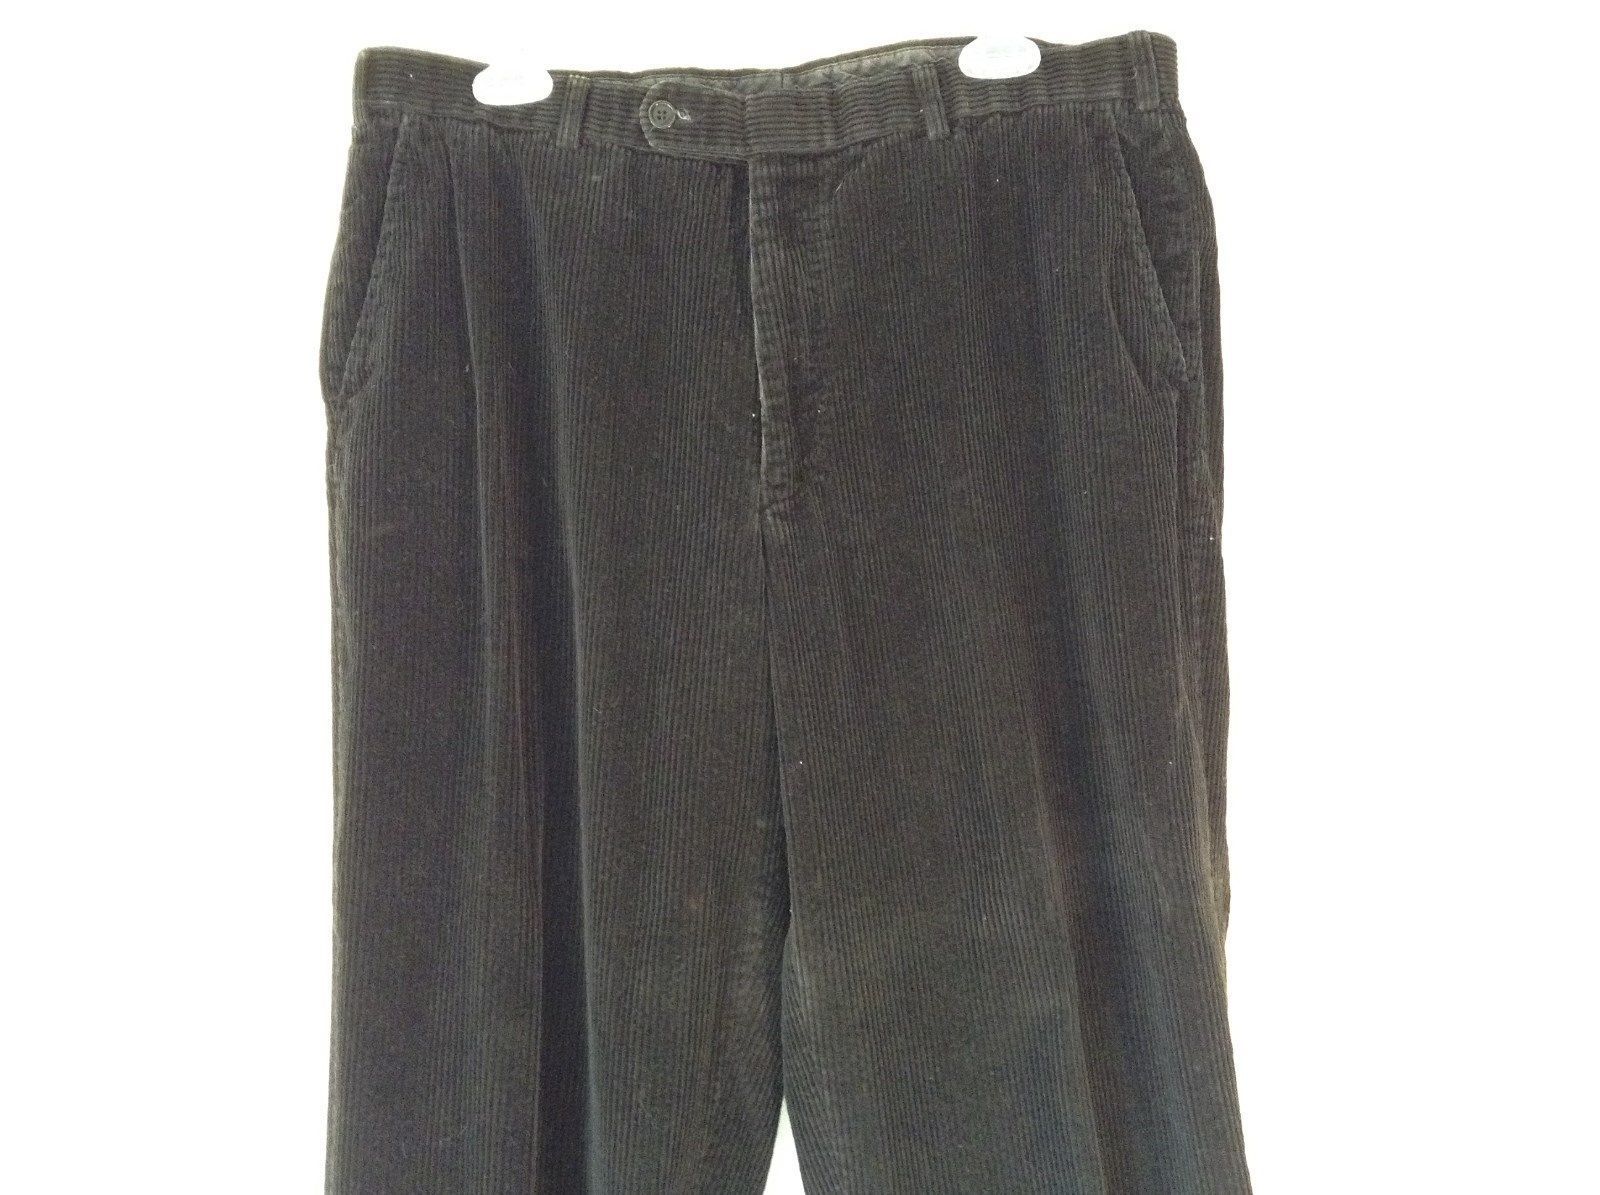 Brooks Brothers Jet Black Corduroy Pants Size 36 Made in Italy